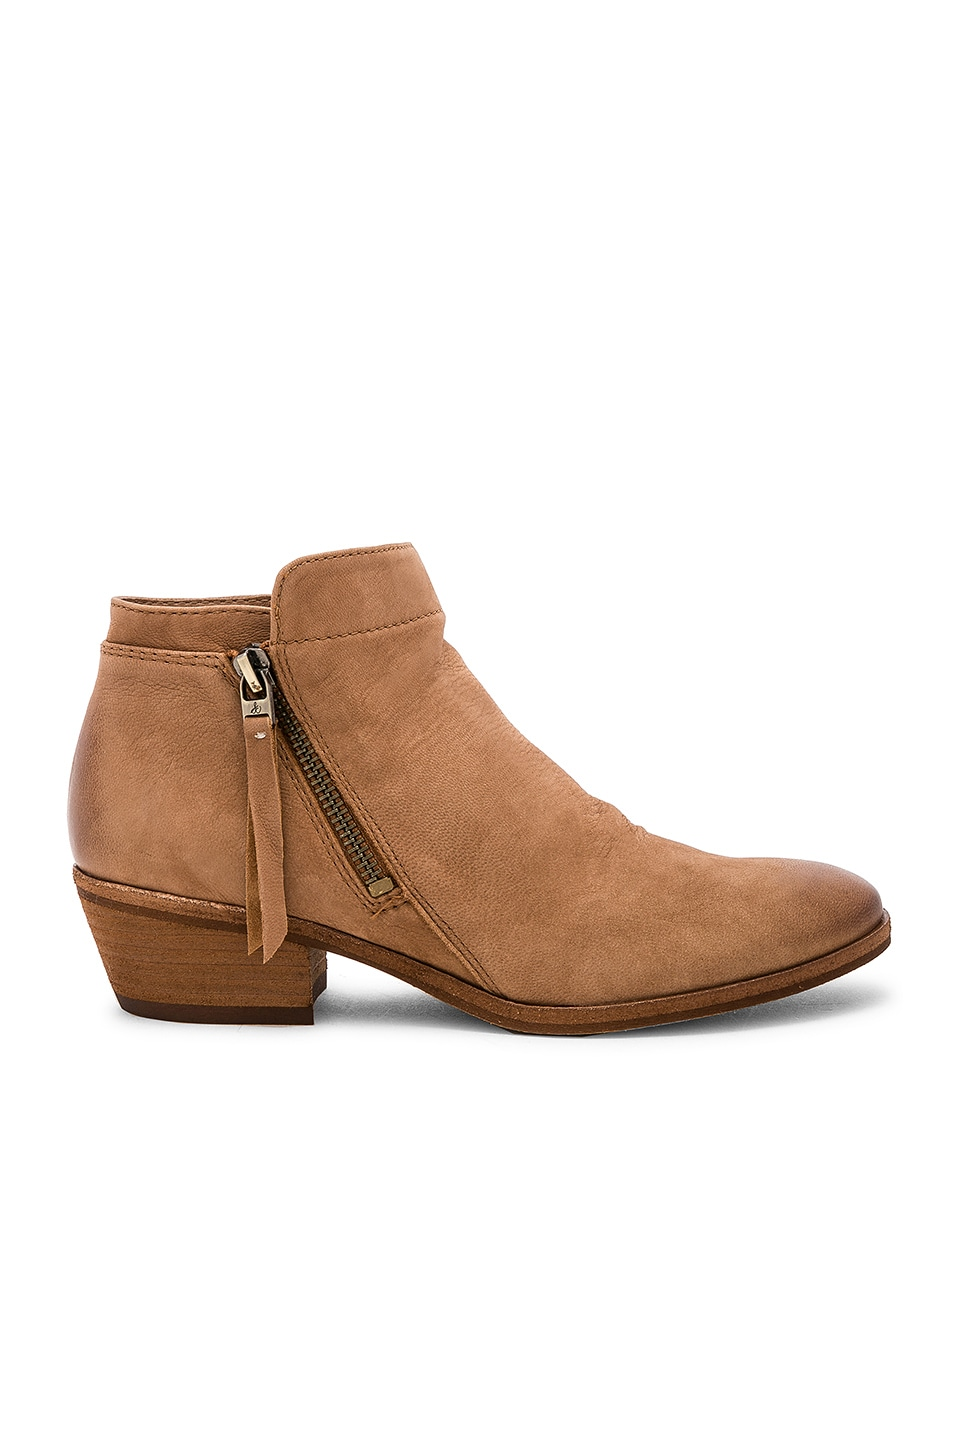 Sam Edelman Packer Bootie in Deep Saddle Leather